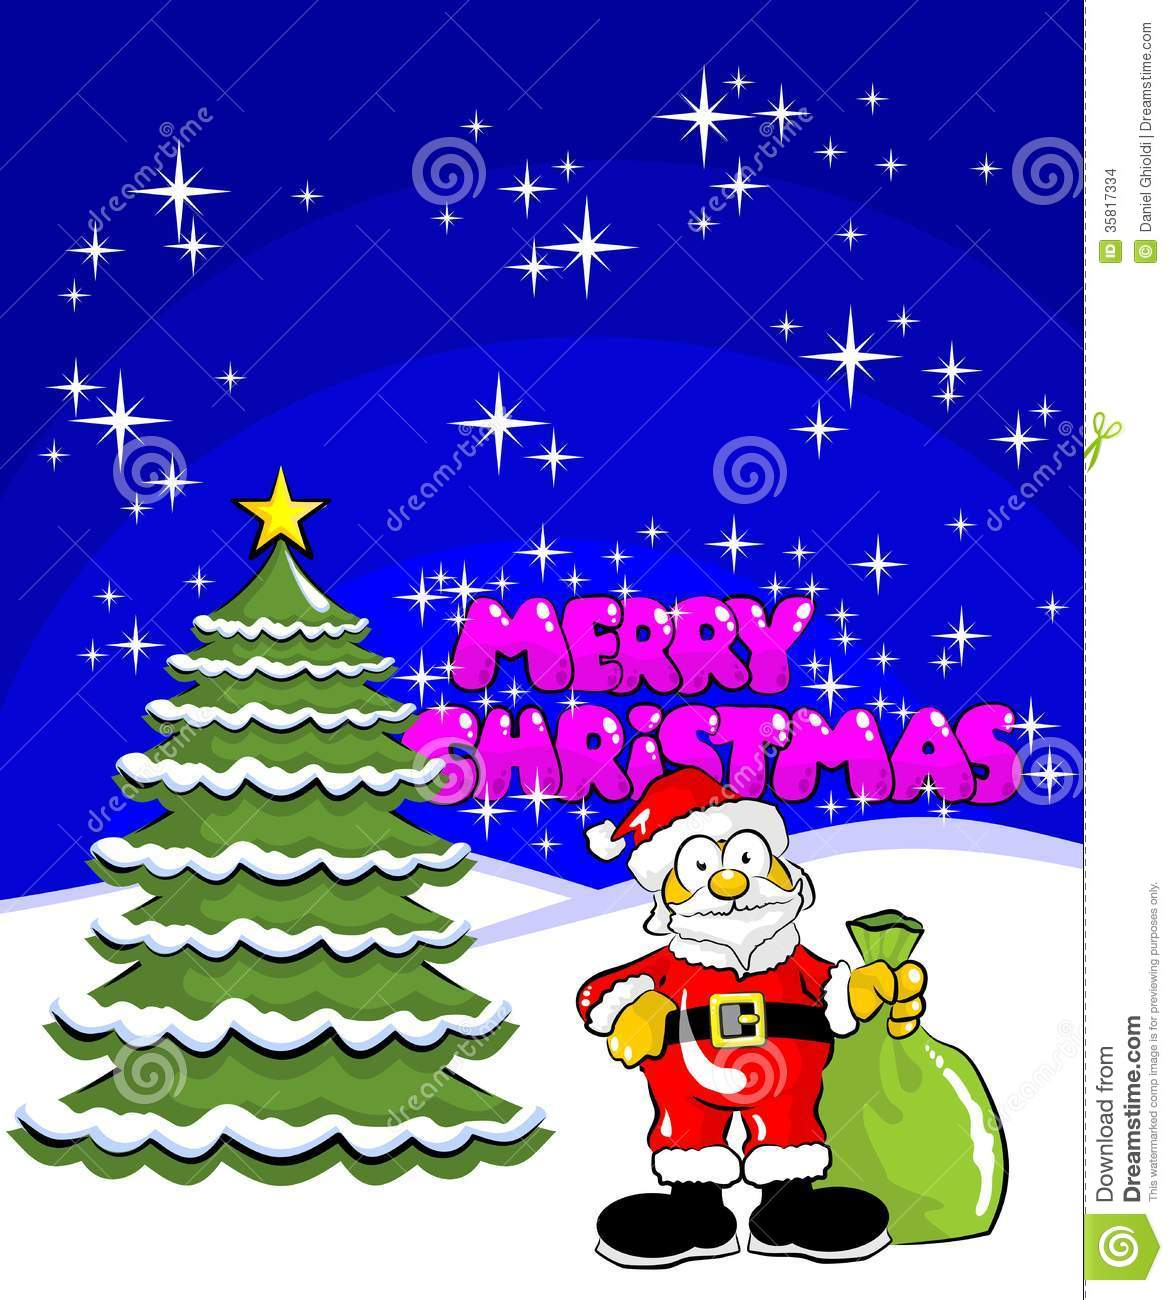 Christmas card with santa claus with a bag of gifts standing in the